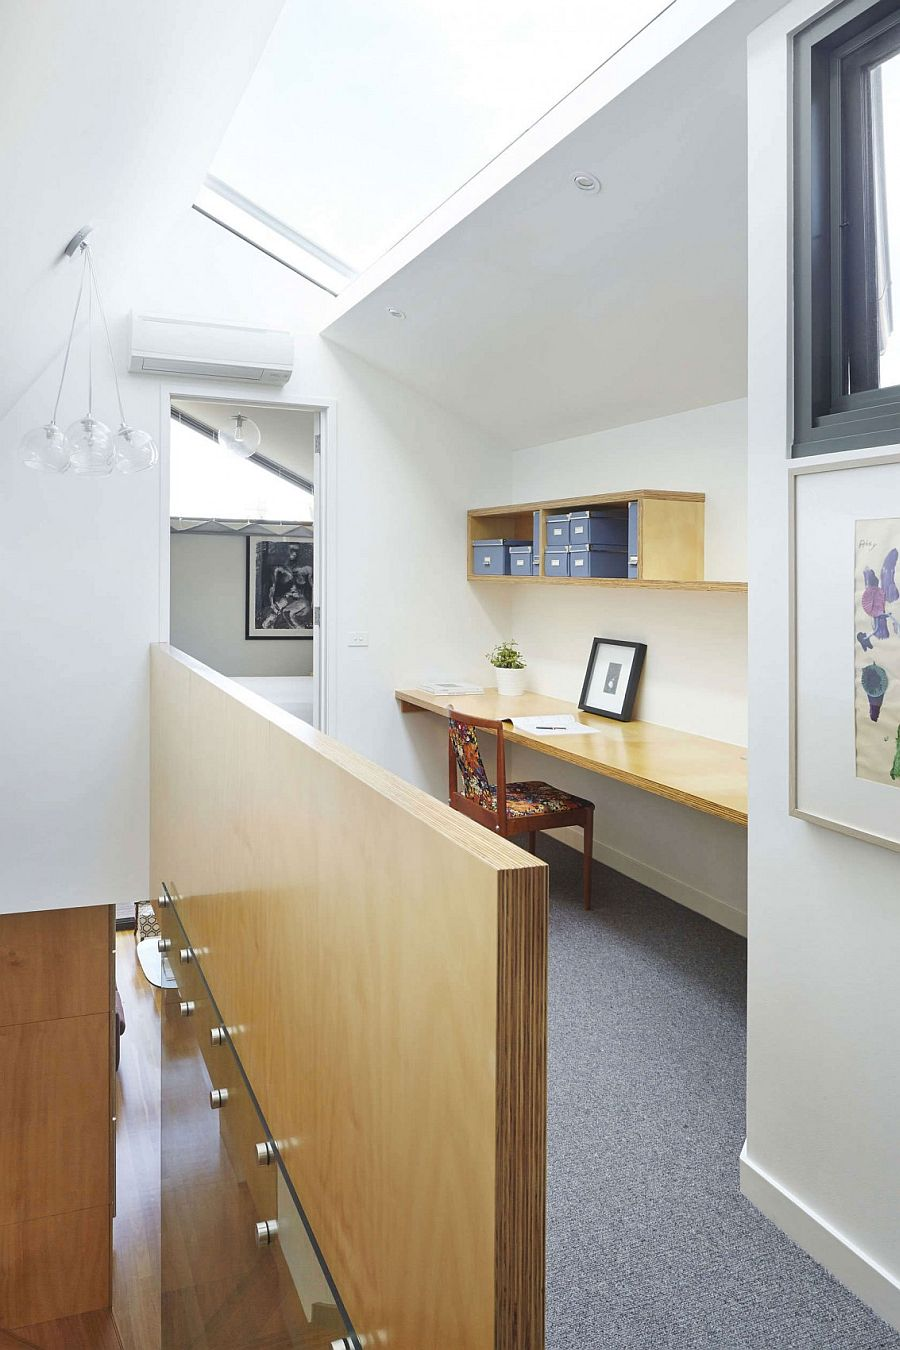 Space-saving home workspace design in the corridor